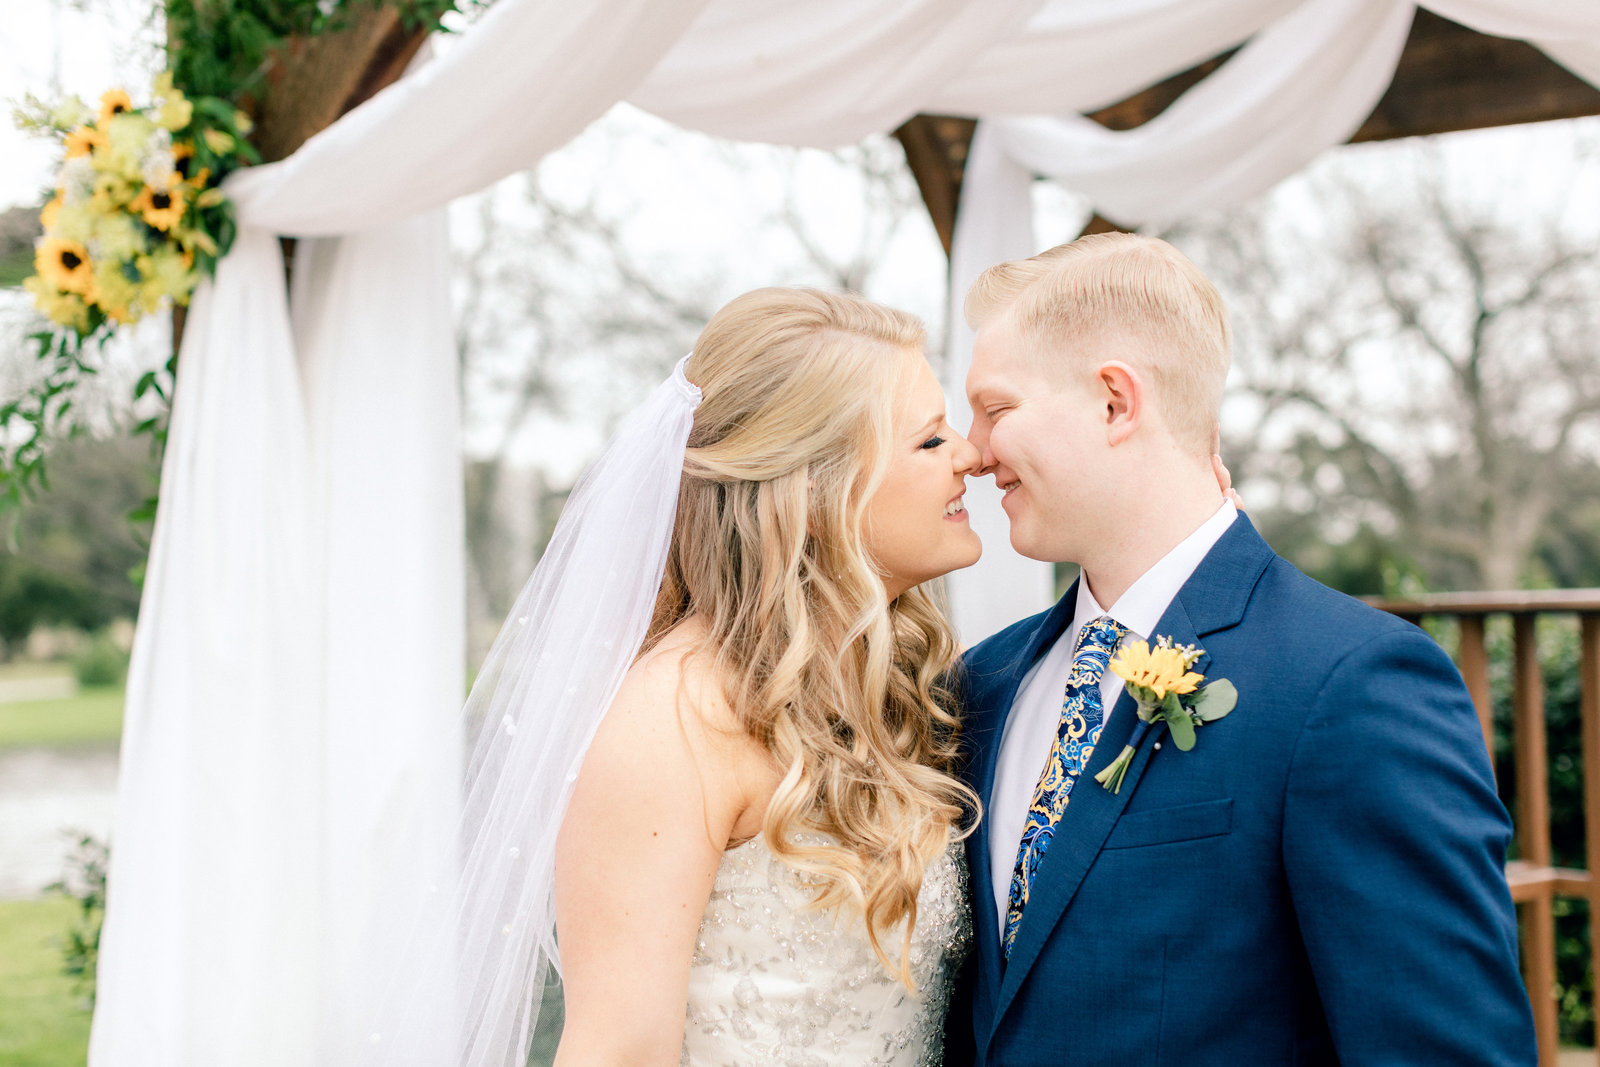 Jodi and Tyler's beautiful spring wedding photography at the Orchard in Azle, Texas.